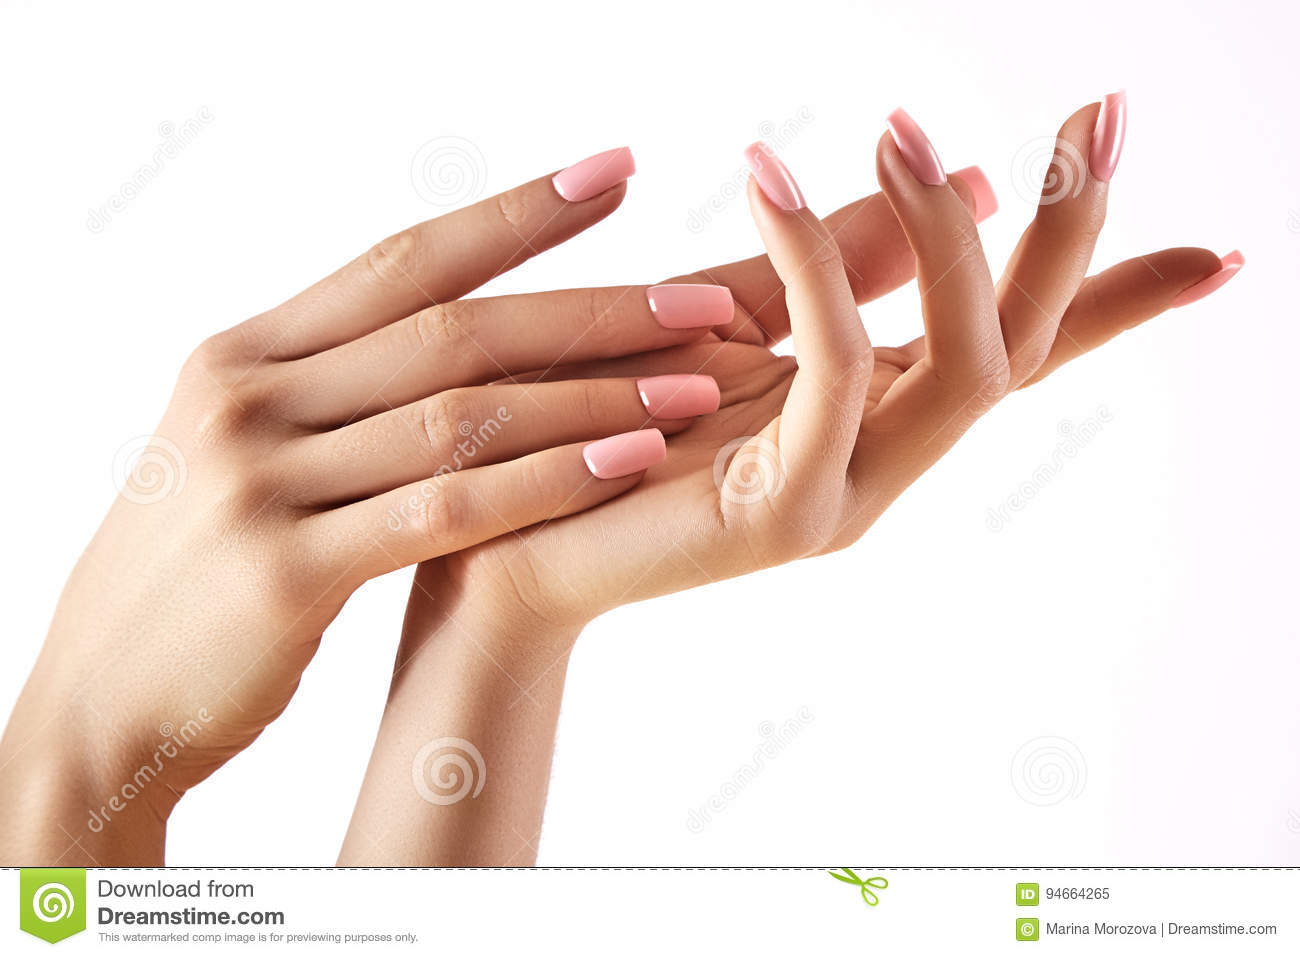 Beautiful woman`s hands on light background. Care about hand. Tender palm. Natural manicure, clean skin. Pink nails